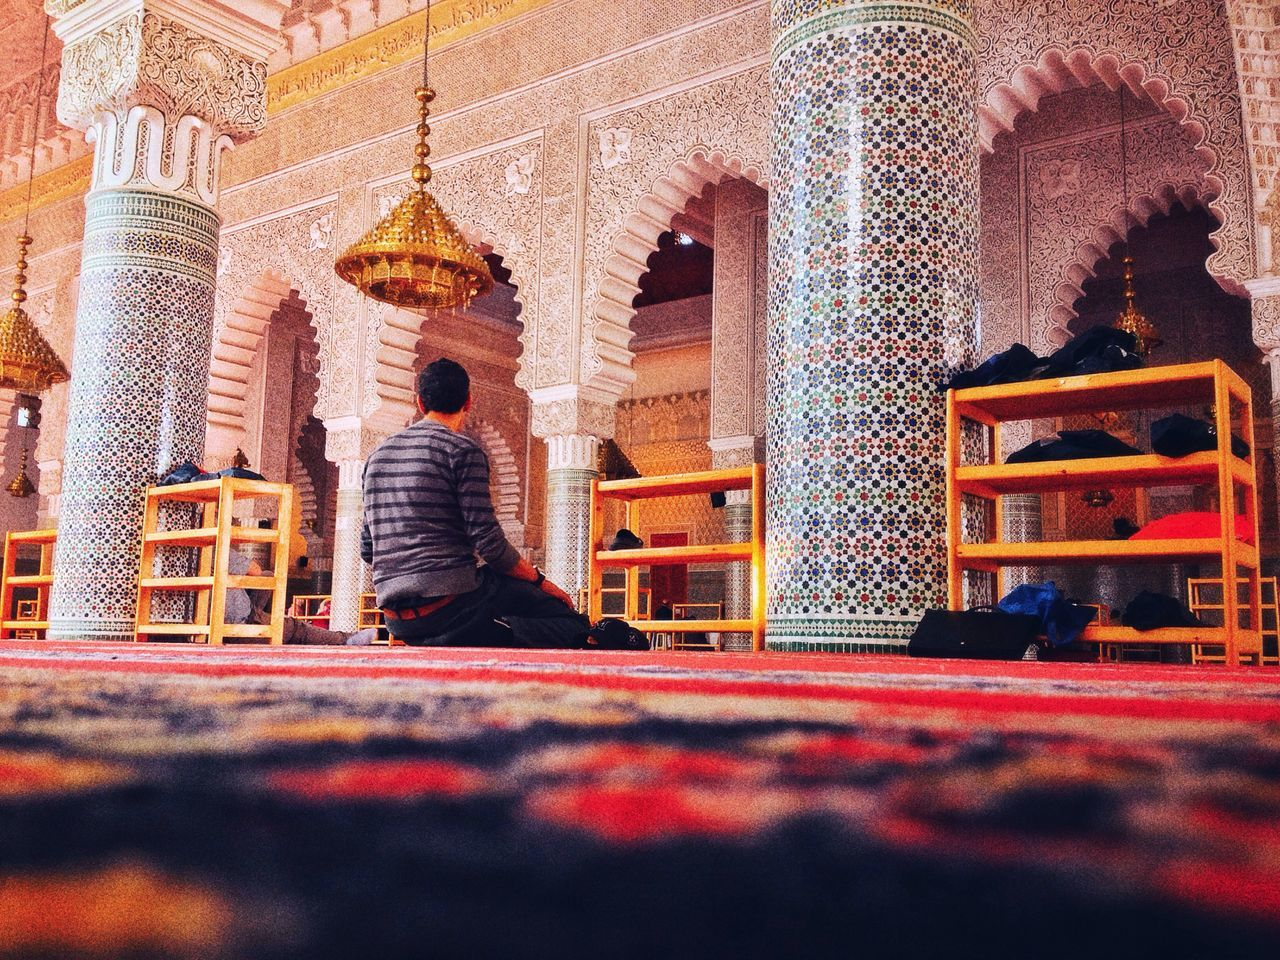 Real People Religion Mosqée muslim Place Of Worship Building Exterior Rear View Built Structure Lifestyles Architecture Spirituality One Person Travel Destinations Men Outdoors Day Love First Eyeem Photo